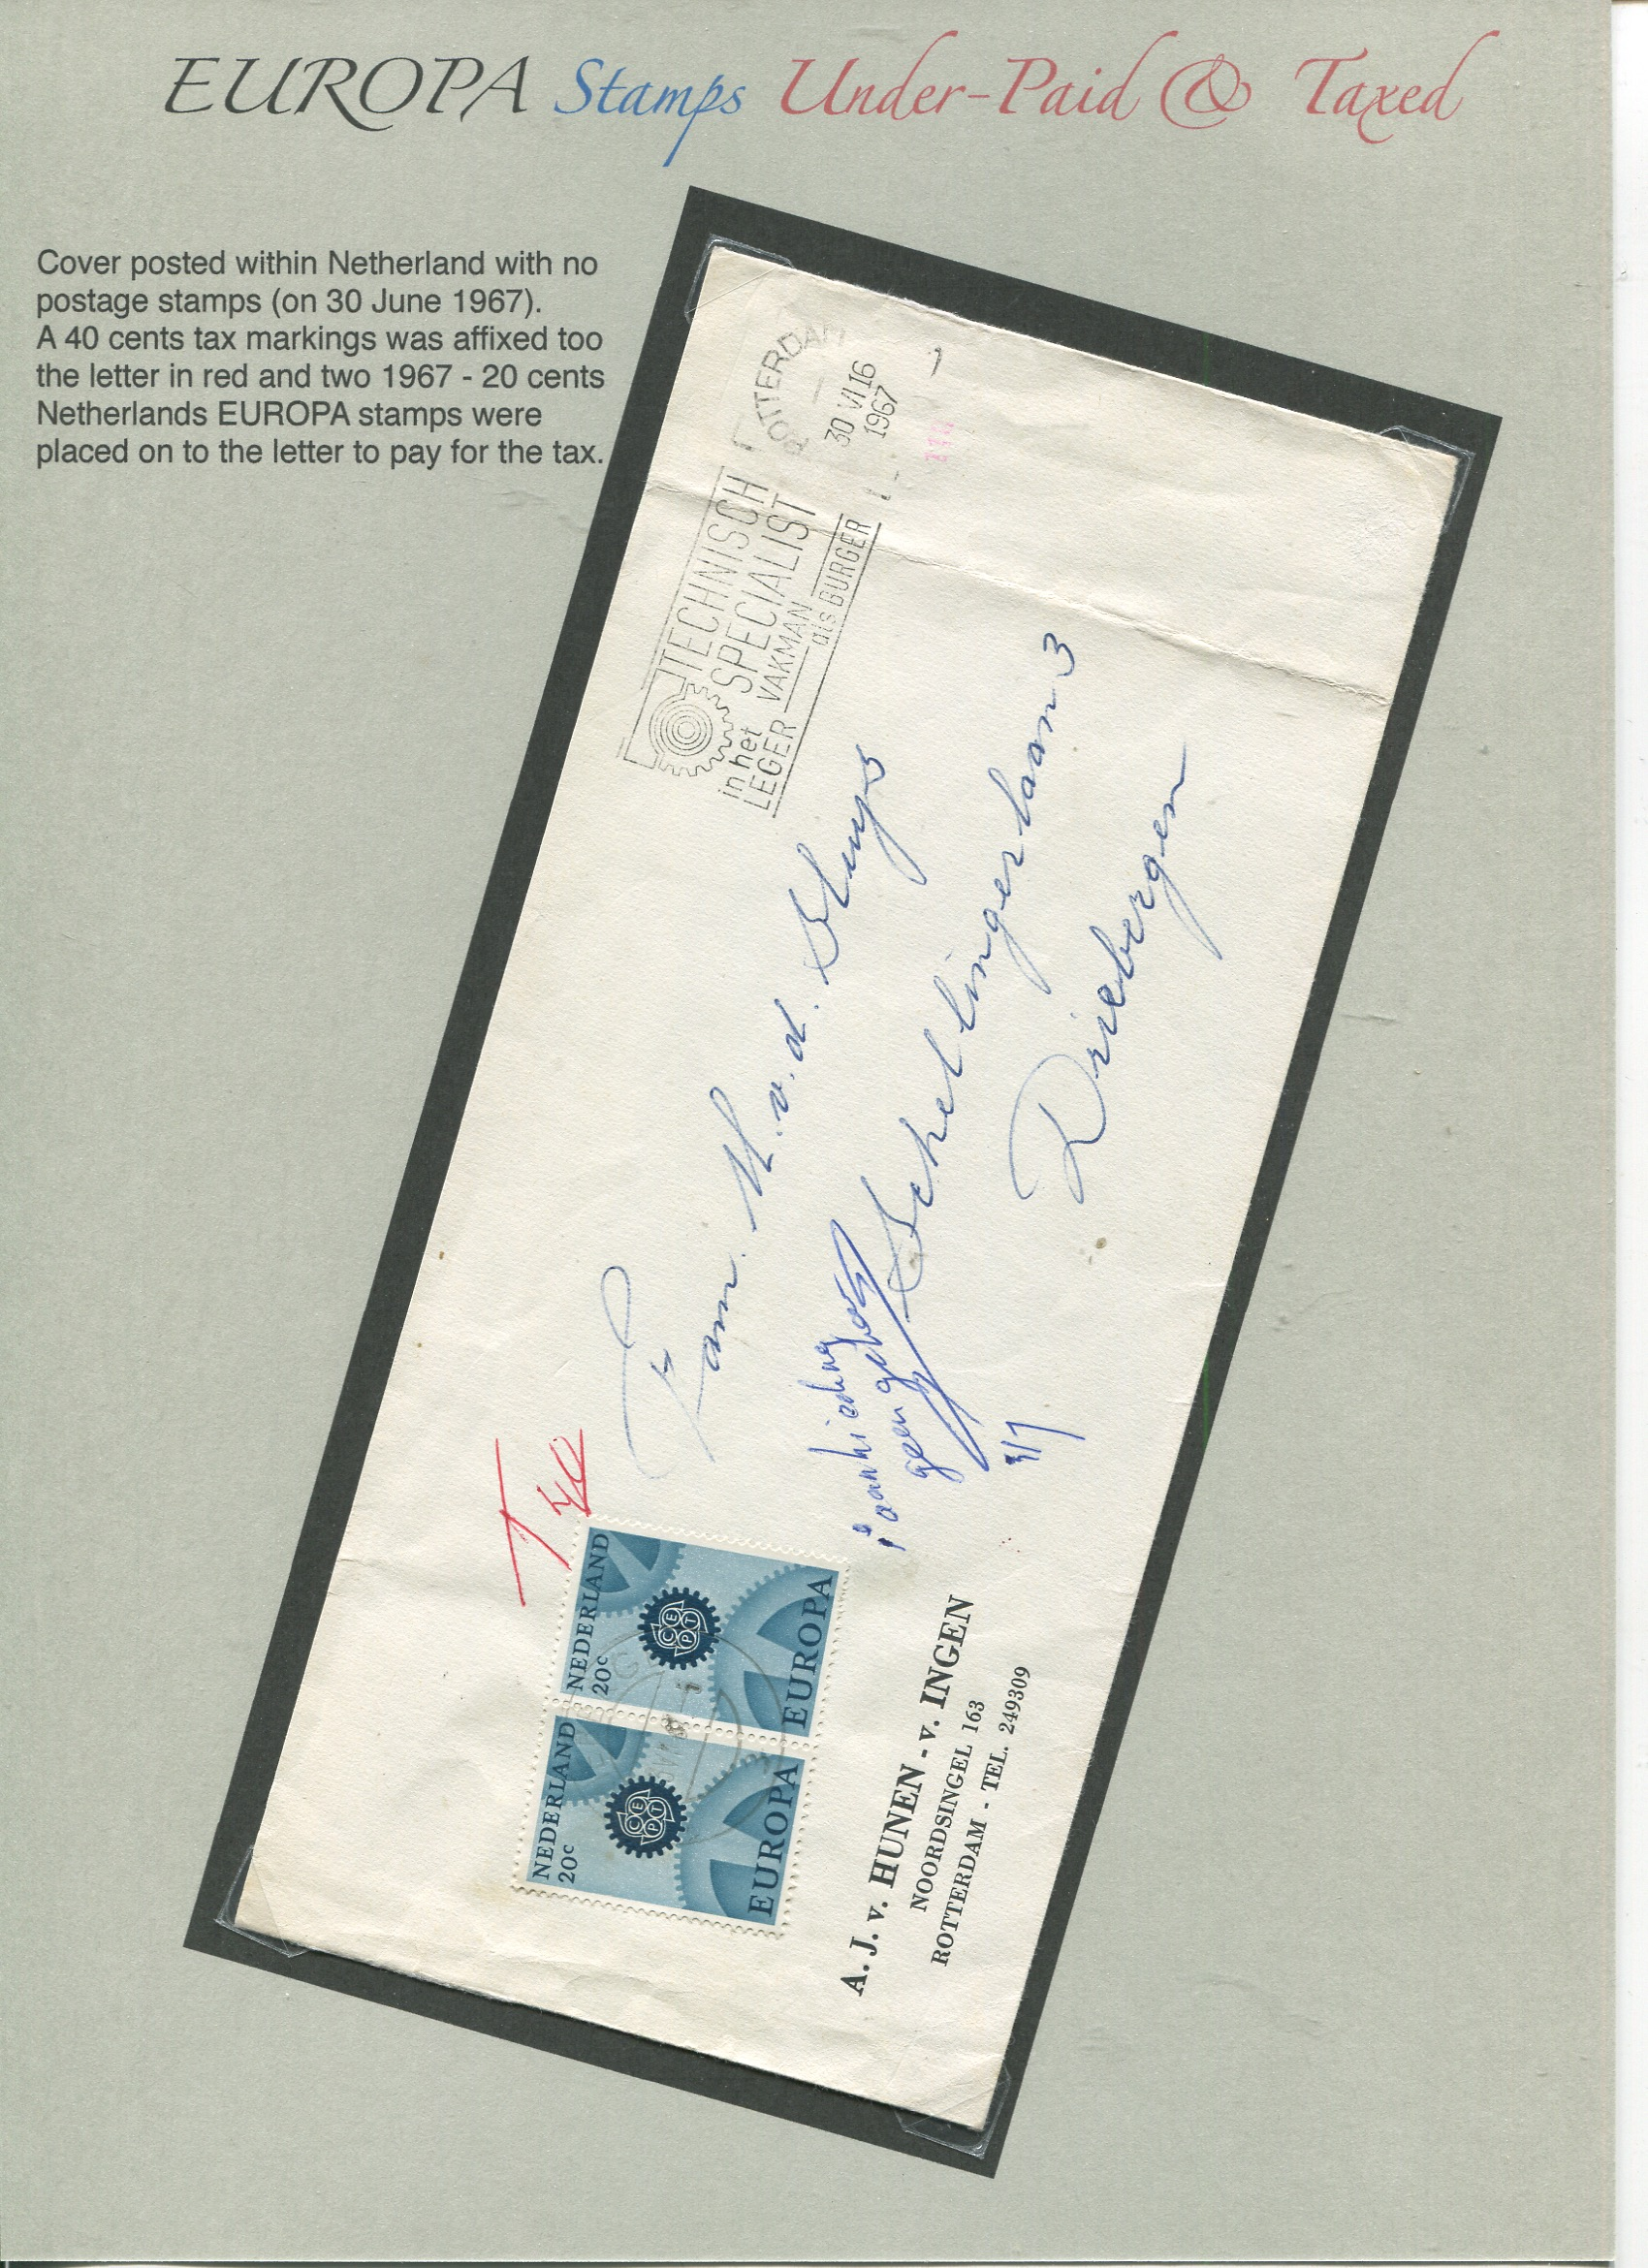 Netherlands EUROPA stamps used as Tax stamp